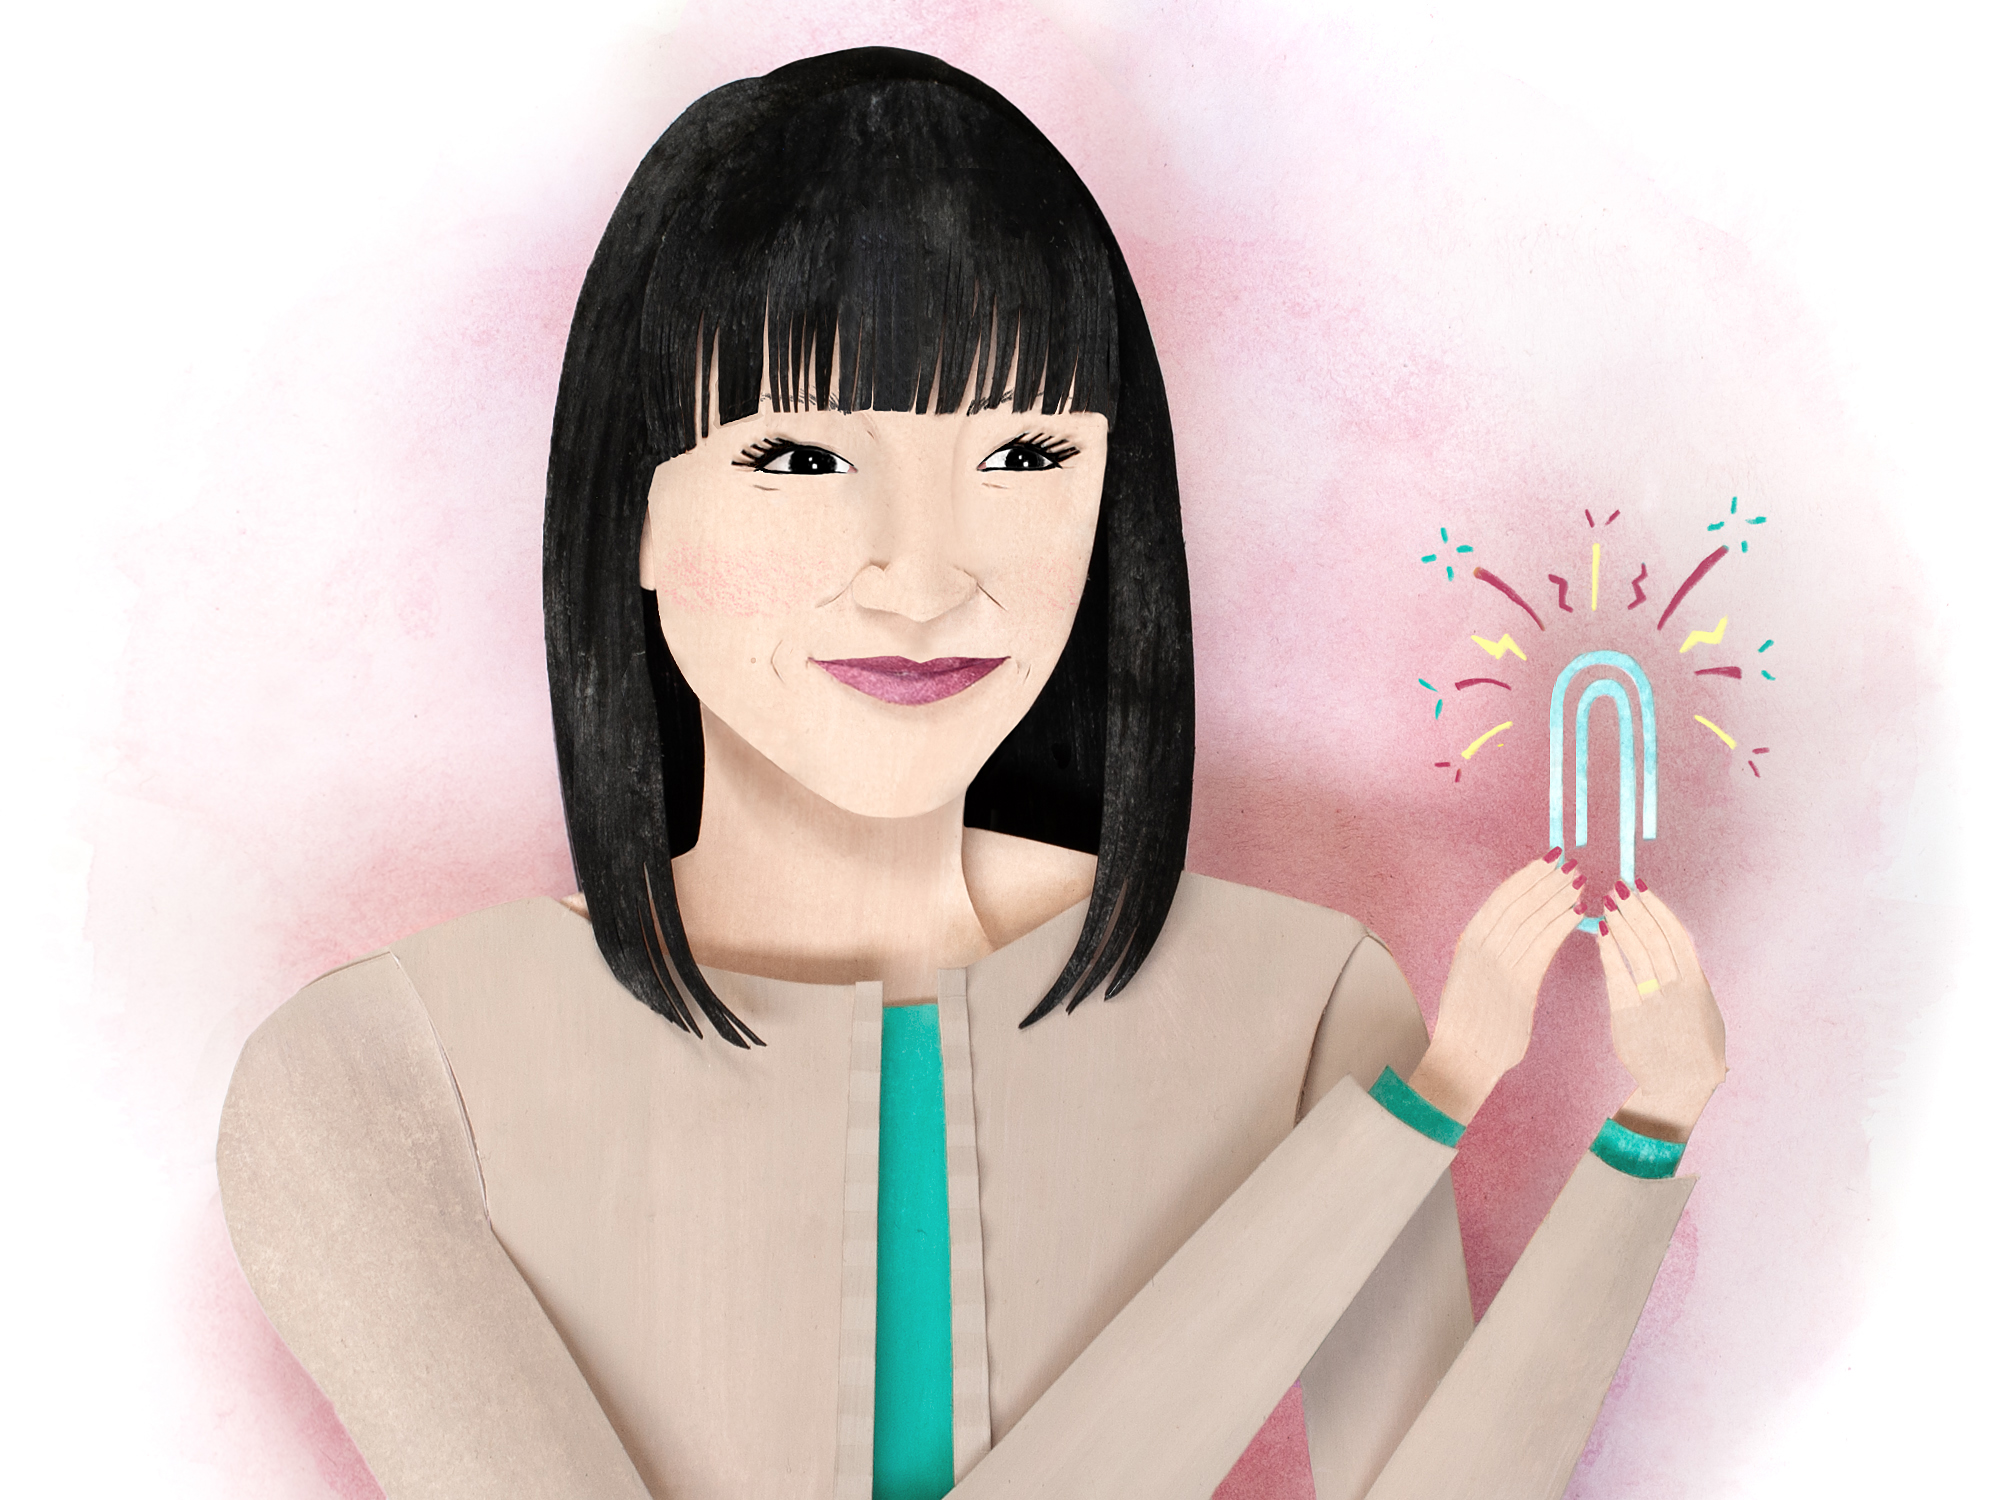 Marie Kondo's Next Project Will Tackle Sparking Joy at Work Marie Kondo's Next Project Will Tackle Sparking Joy at Work